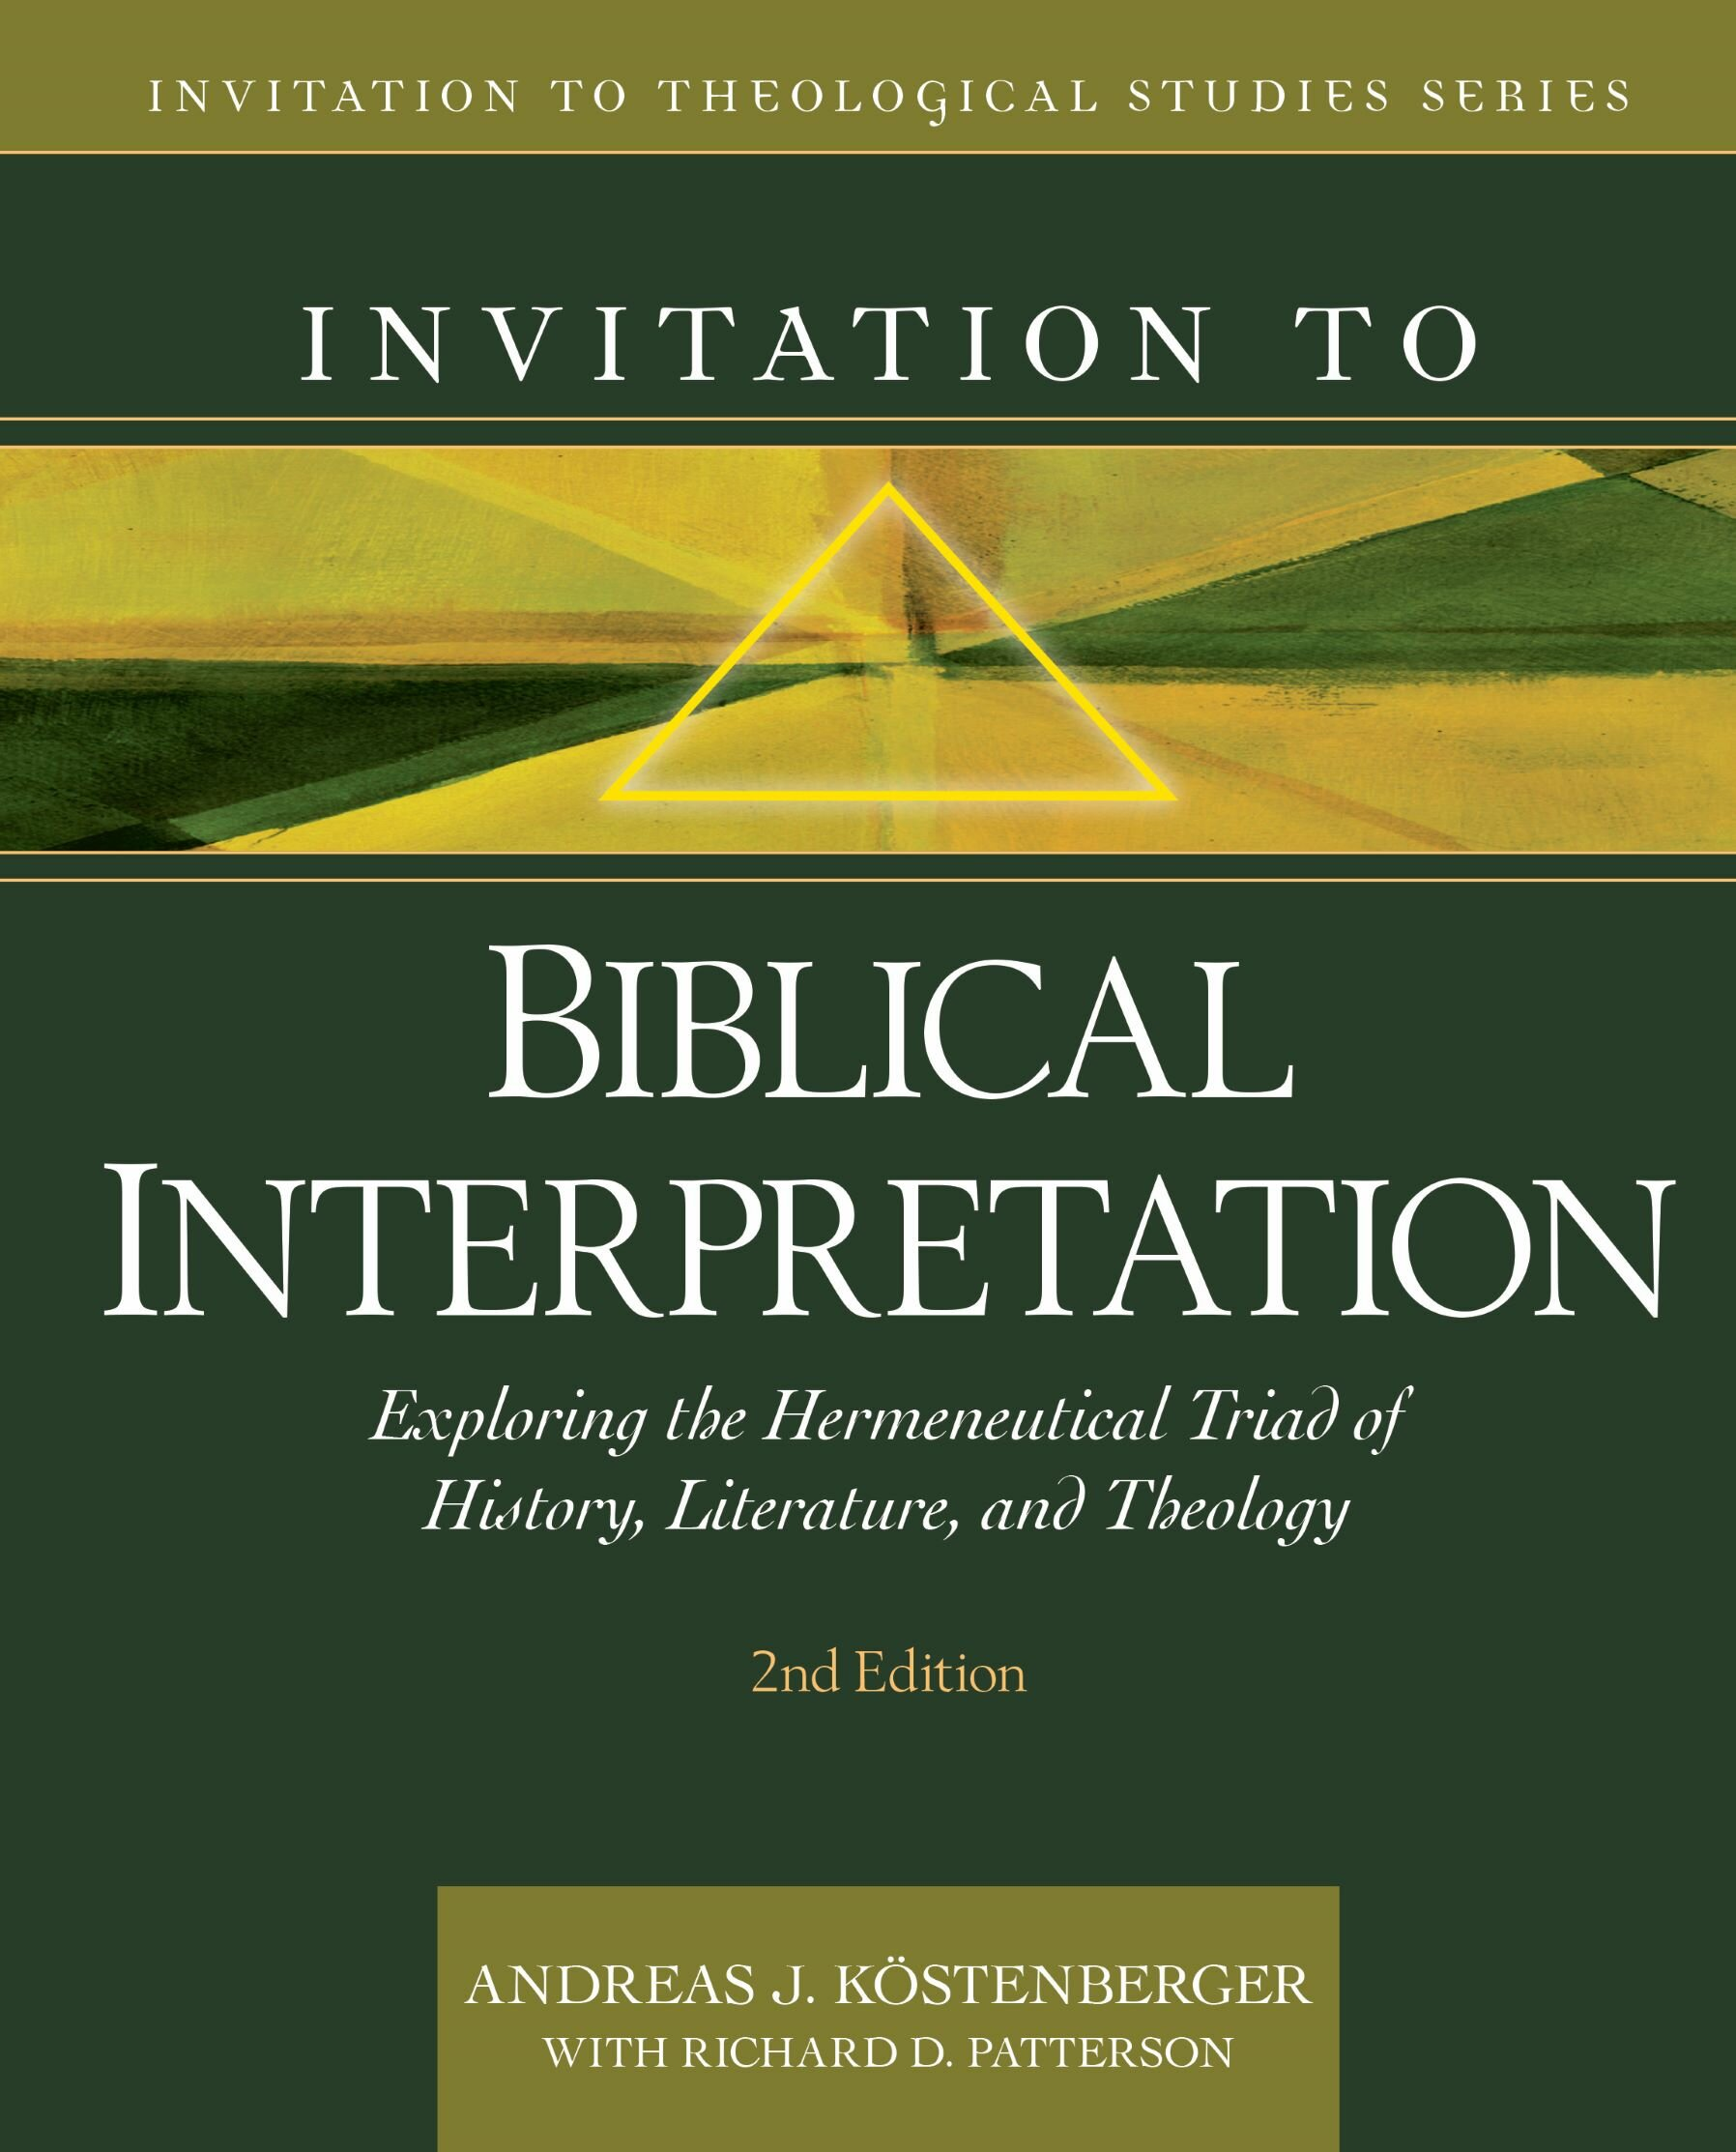 Invitation to Biblical Interpretation: Exploring the Hermeneutical Triad of History, Literature, and Theology, 2nd ed. (Invitation to Theological Studies Series)